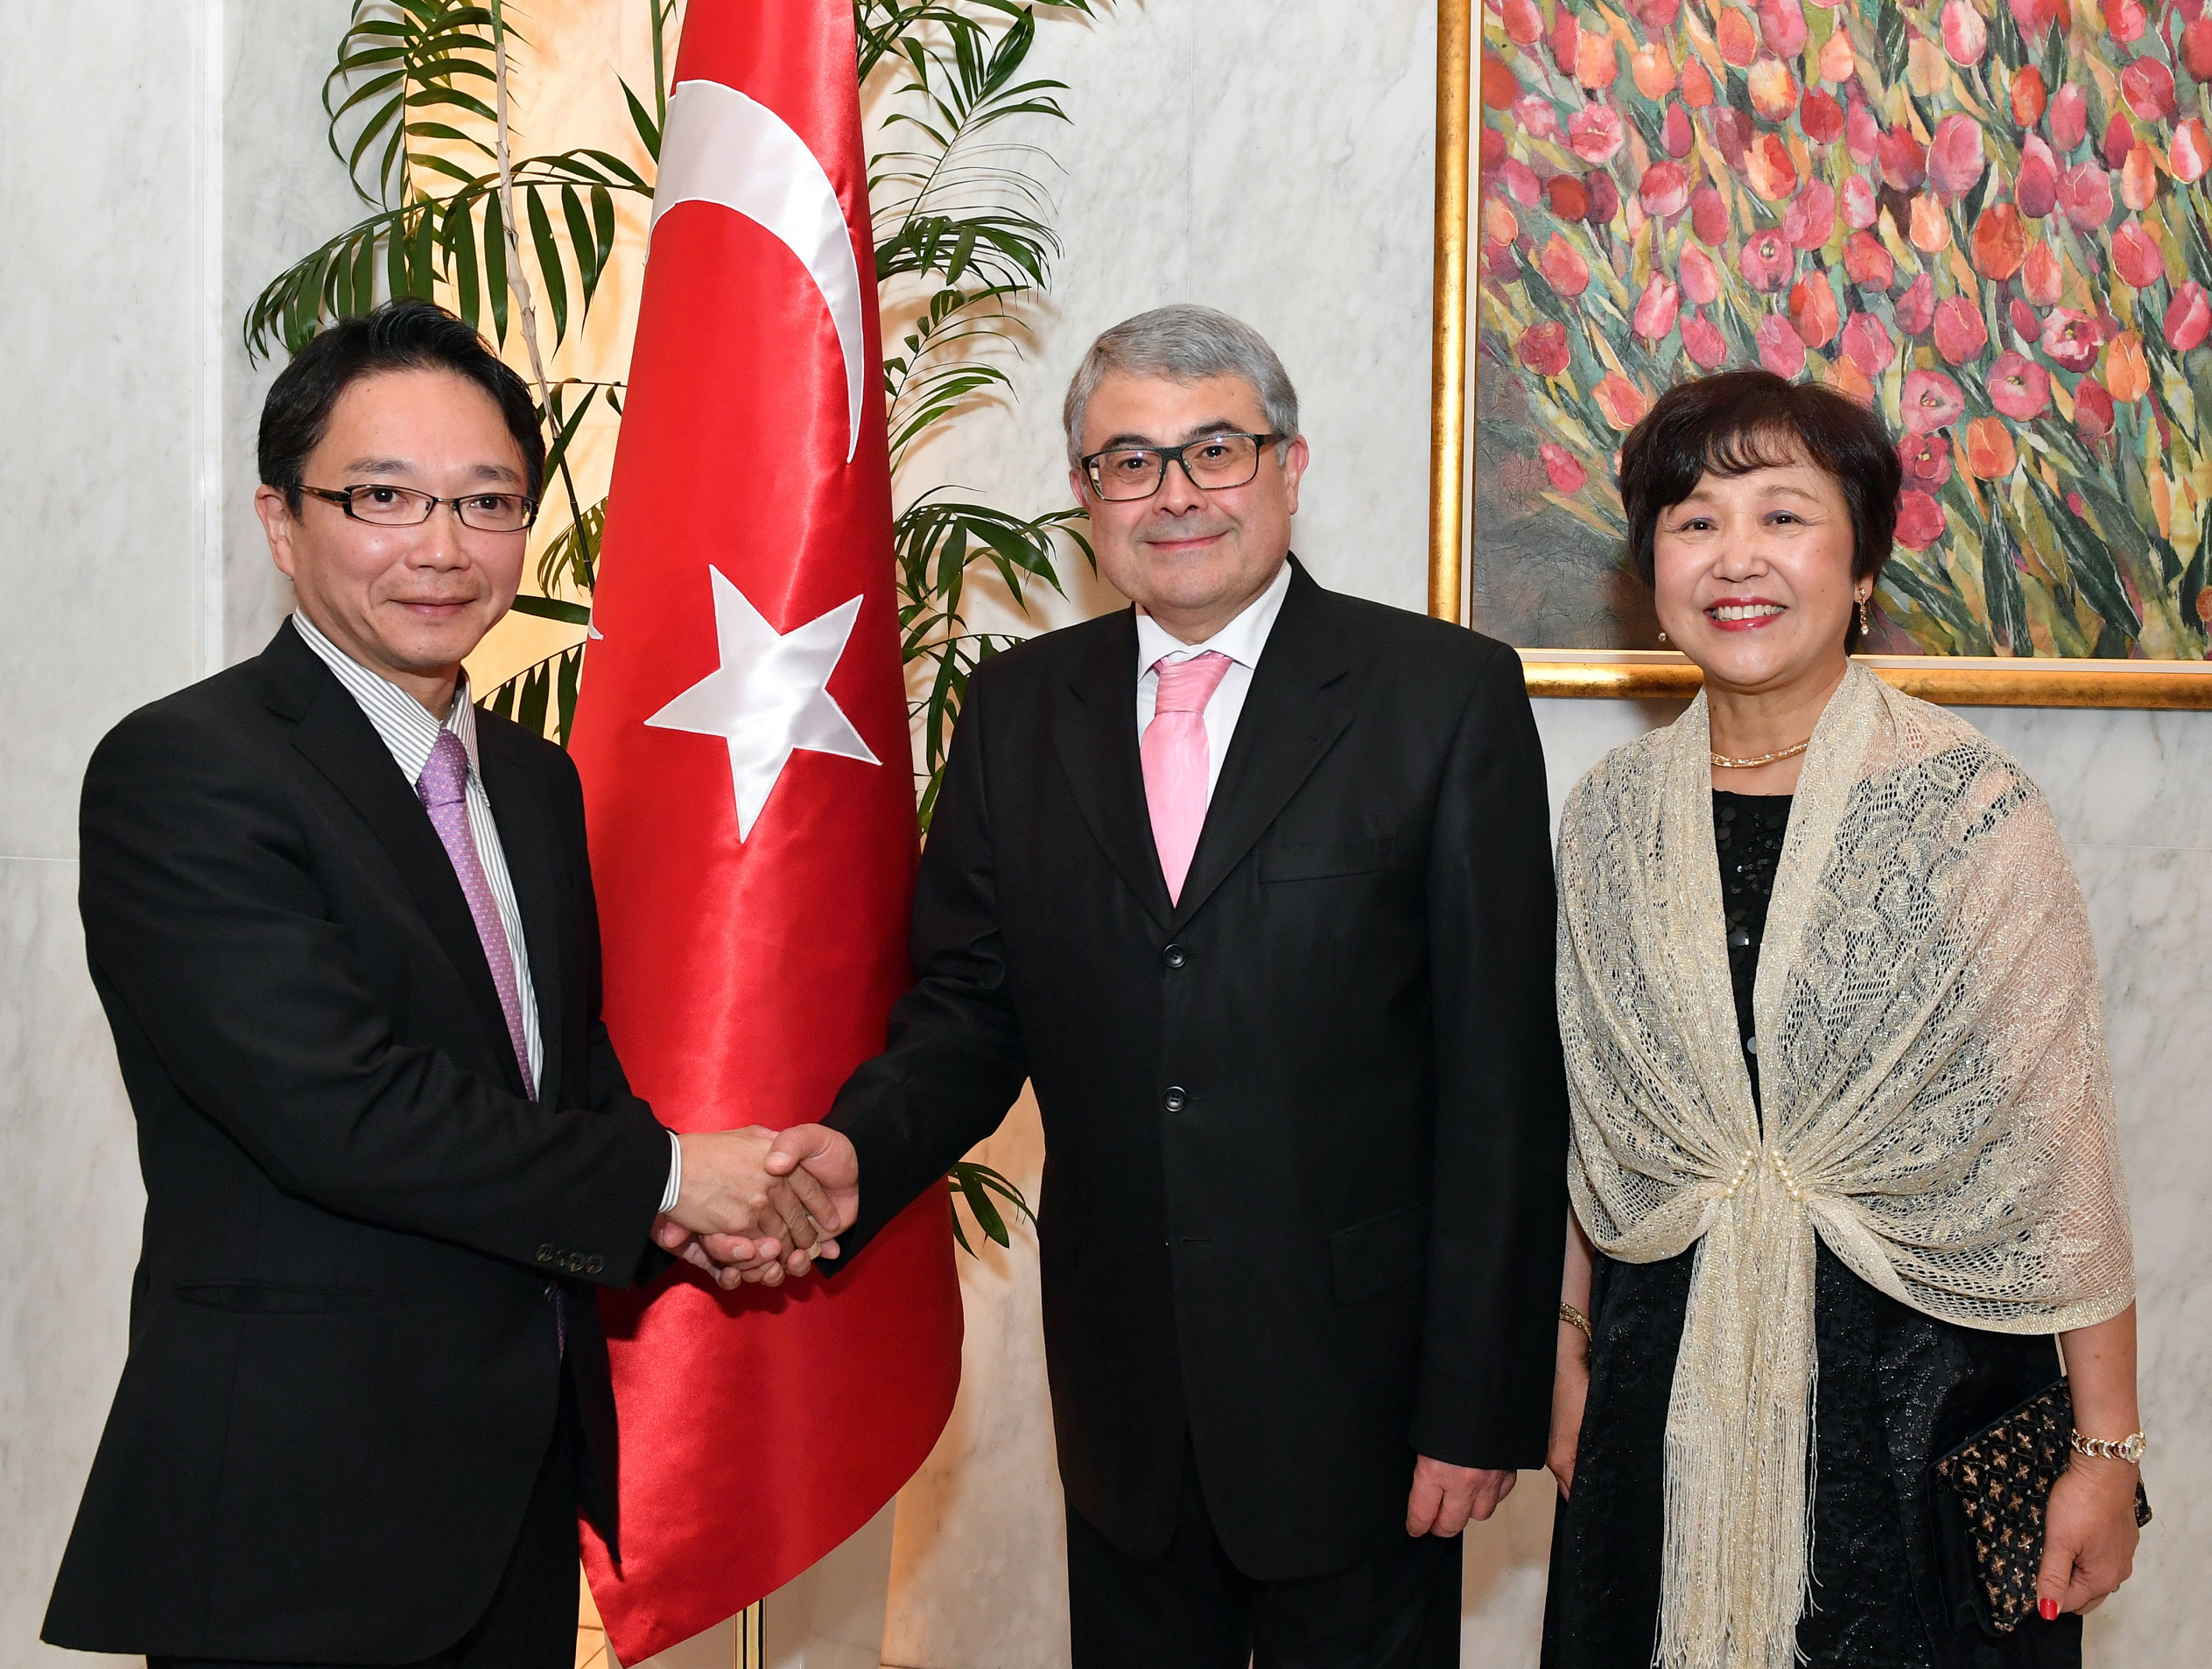 Turkish Ambassador Ahmet Bulent Meric (center) and his wife, Kumiko, welcome Keitaro Ono, parliamentary vice-minister of defense, during a reception to celebrate Turkey's national day at the ambassador's residence in Tokyo on Oct. 26. |  YOSHIAKI MIURA